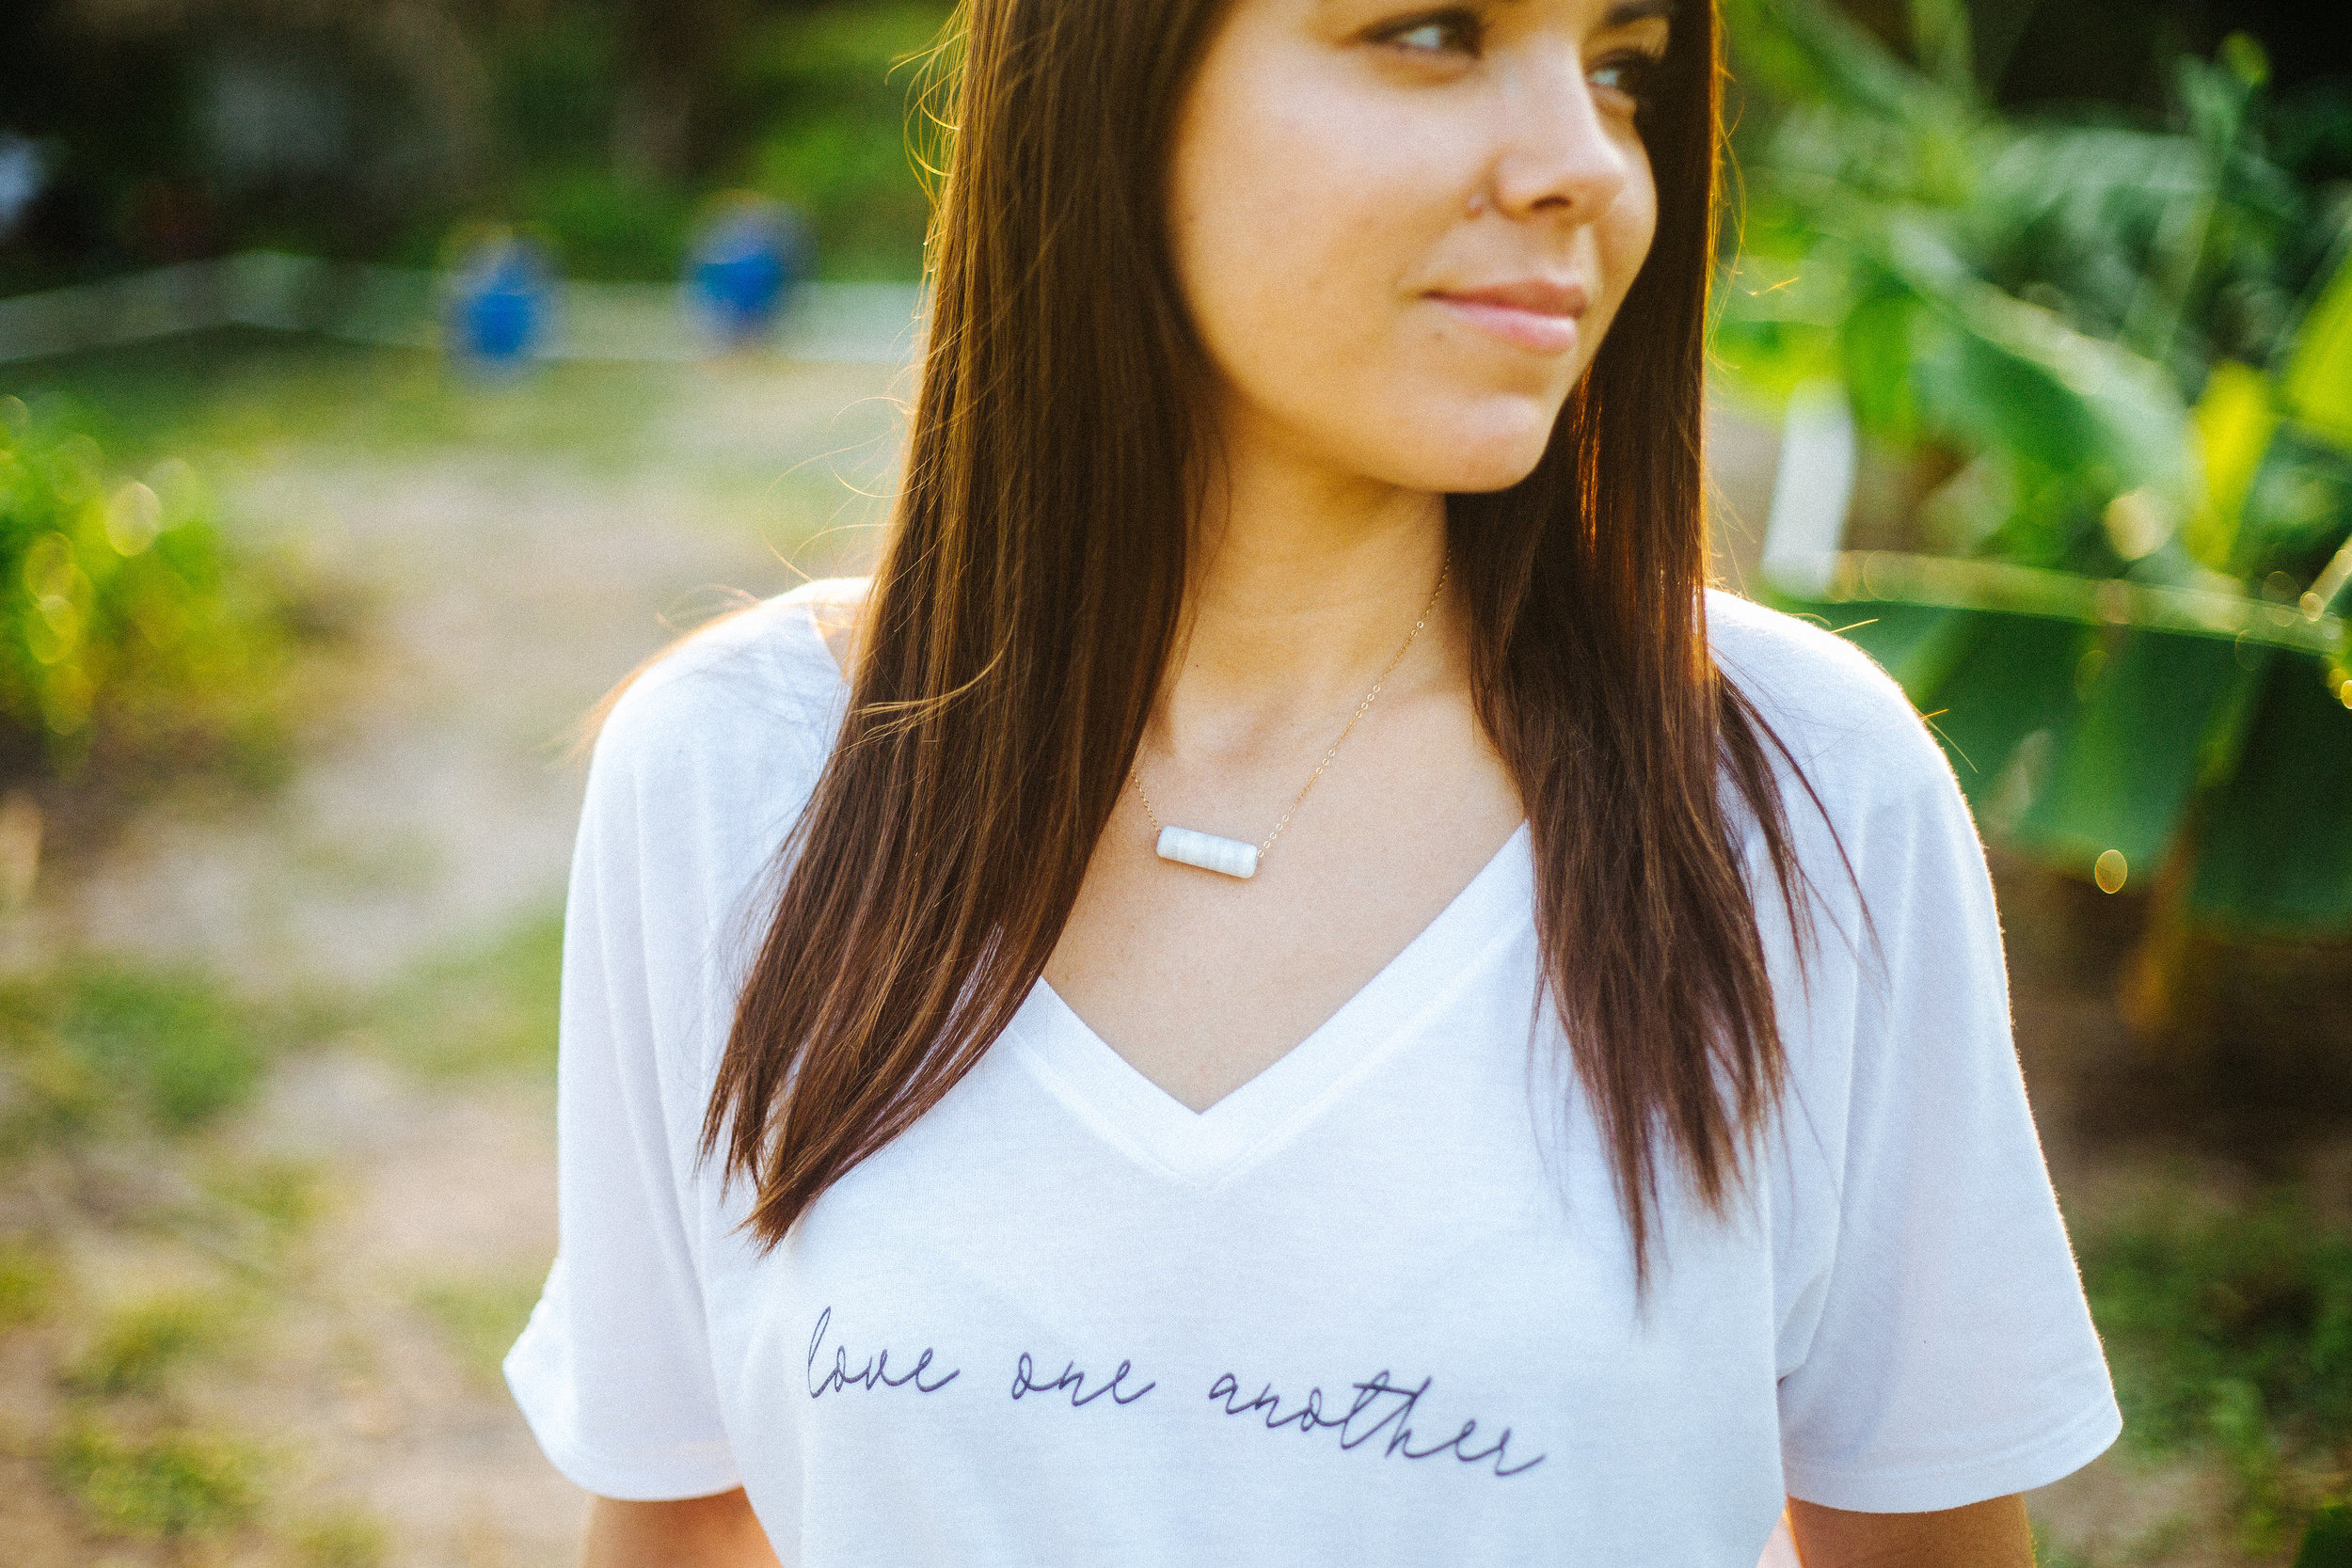 Doxhalogy Jewelry   Support women in Honduras by purchasing a staple Doxhalogy necklace or bracelet created by women in Honduras.